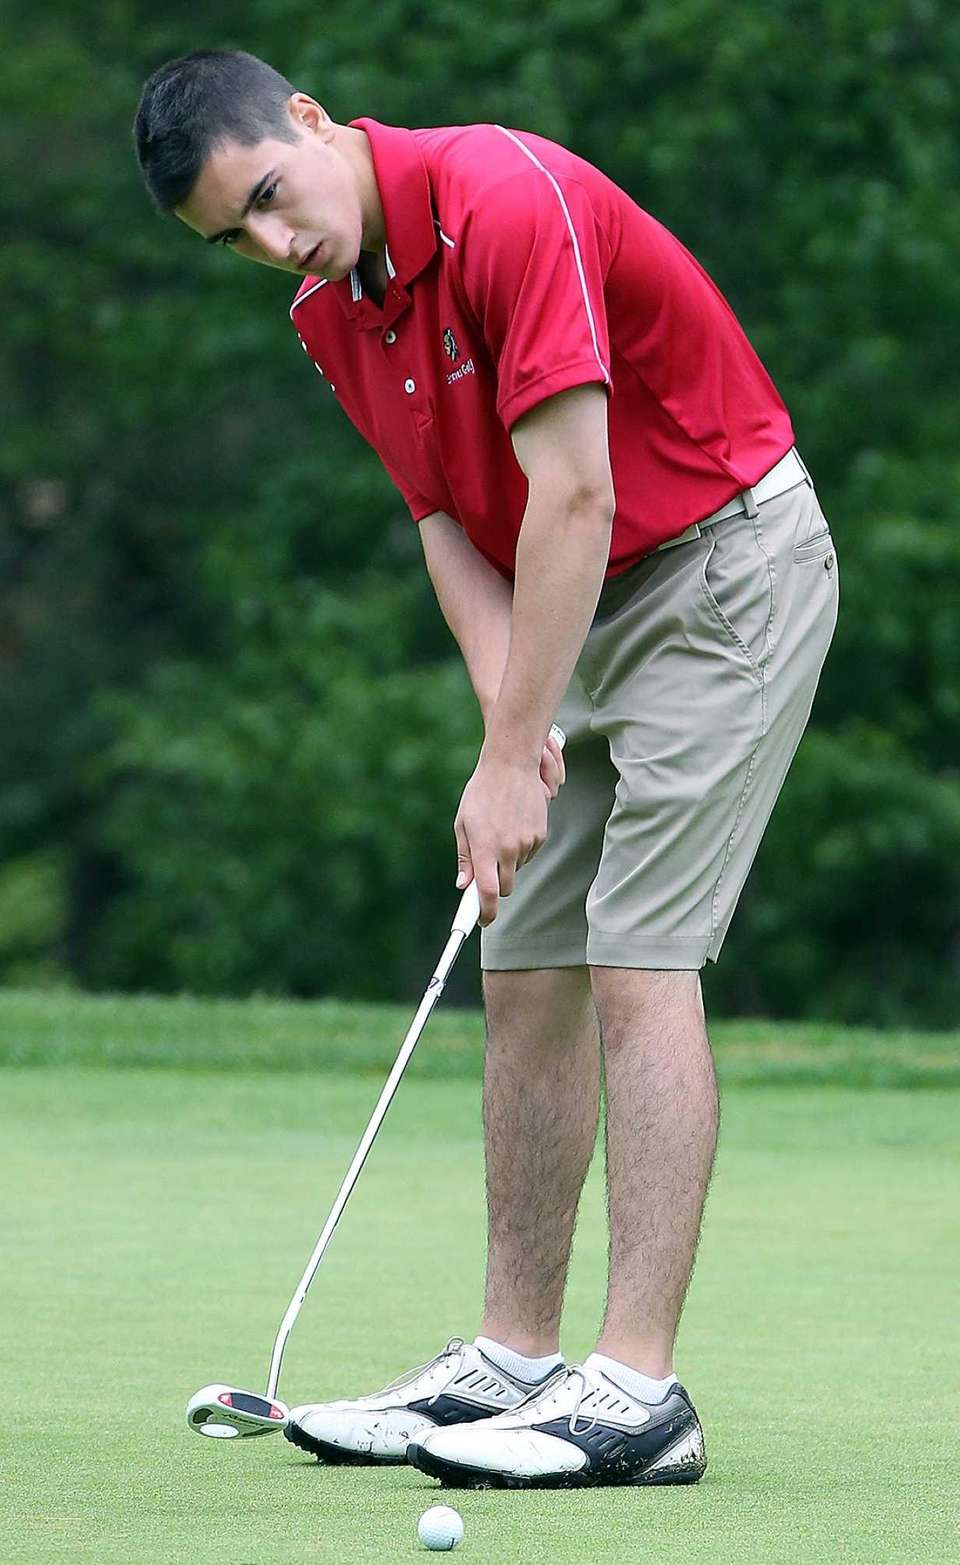 Syosset's James Schlesinger putts on the green at